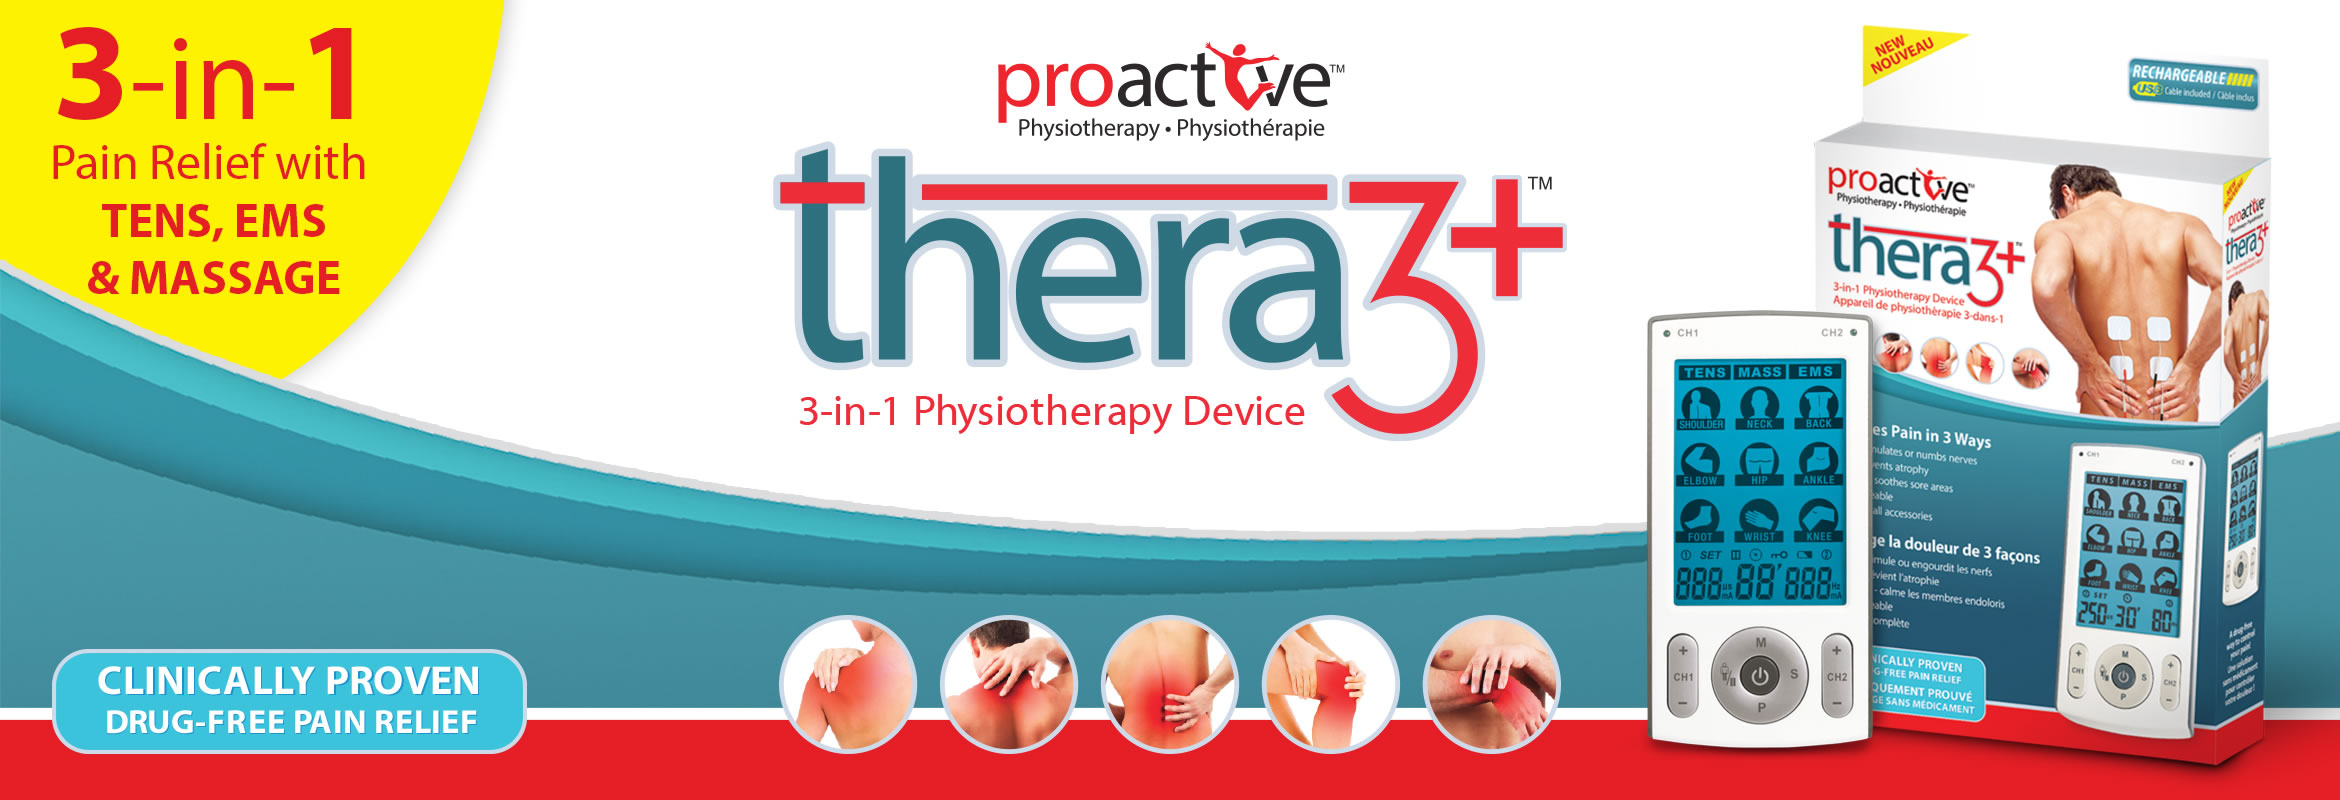 Thera3+™ by ProActive™ is a 3-in-1 (TENS, EMS & massage) device is rechargeable with 78 pre-set programs along with the ability to fully customize treatment options.